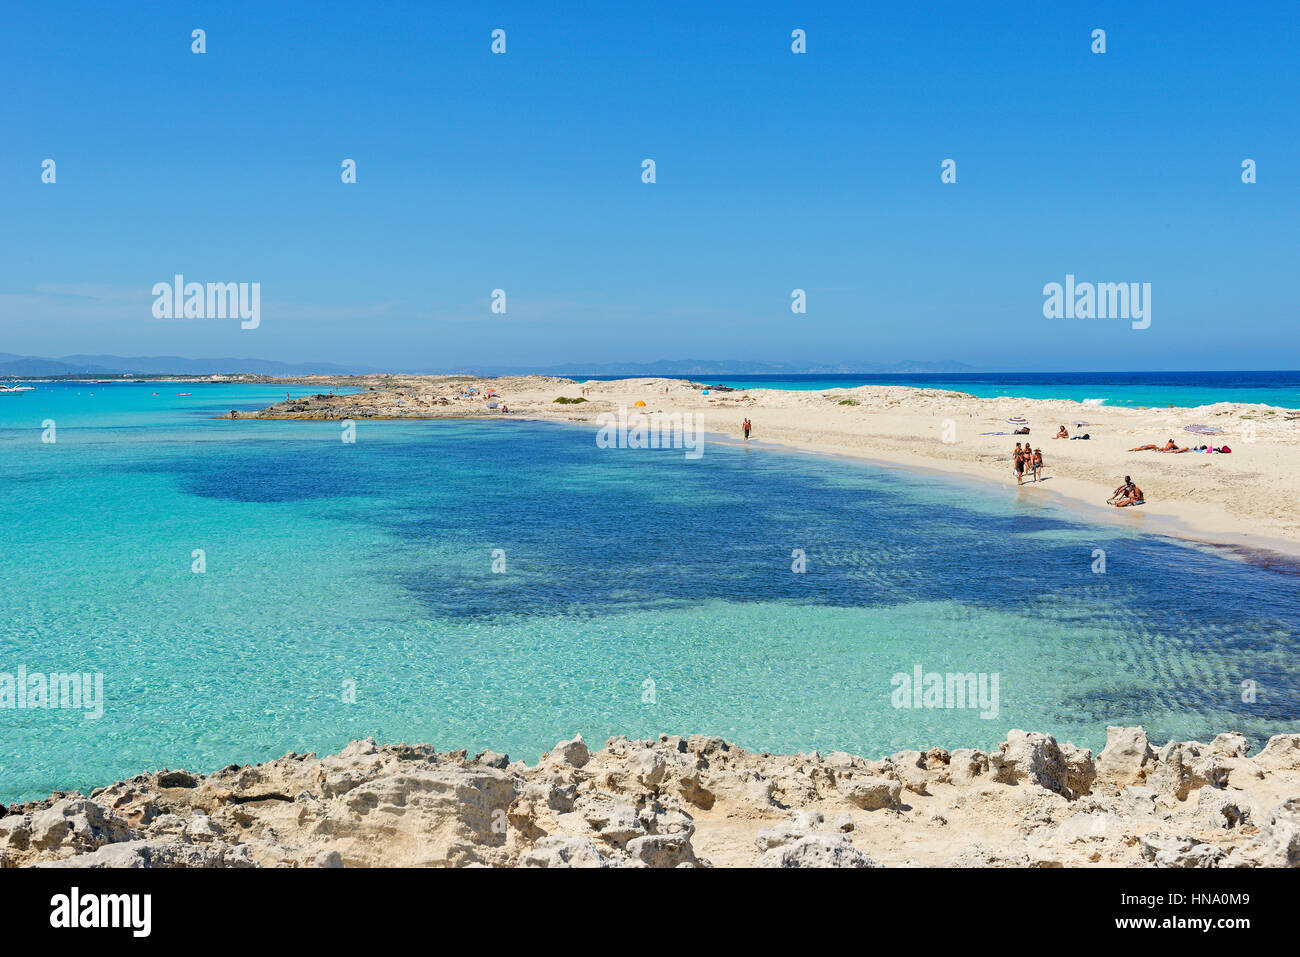 Tourquoise water, Ses Illetes beach, Formentera, Balearic Islands, Spain - Stock Image